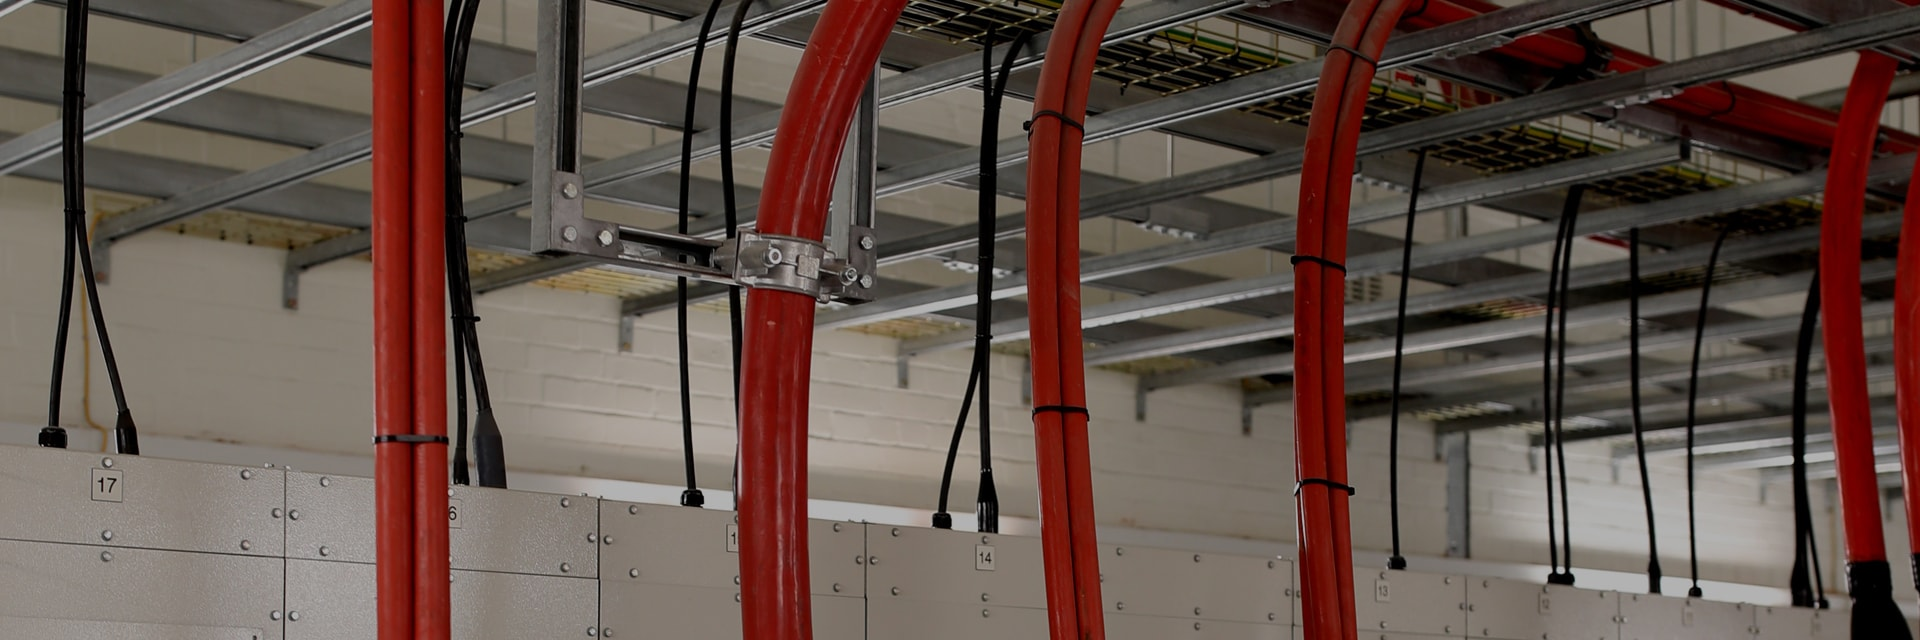 1920x640-red-cables-min